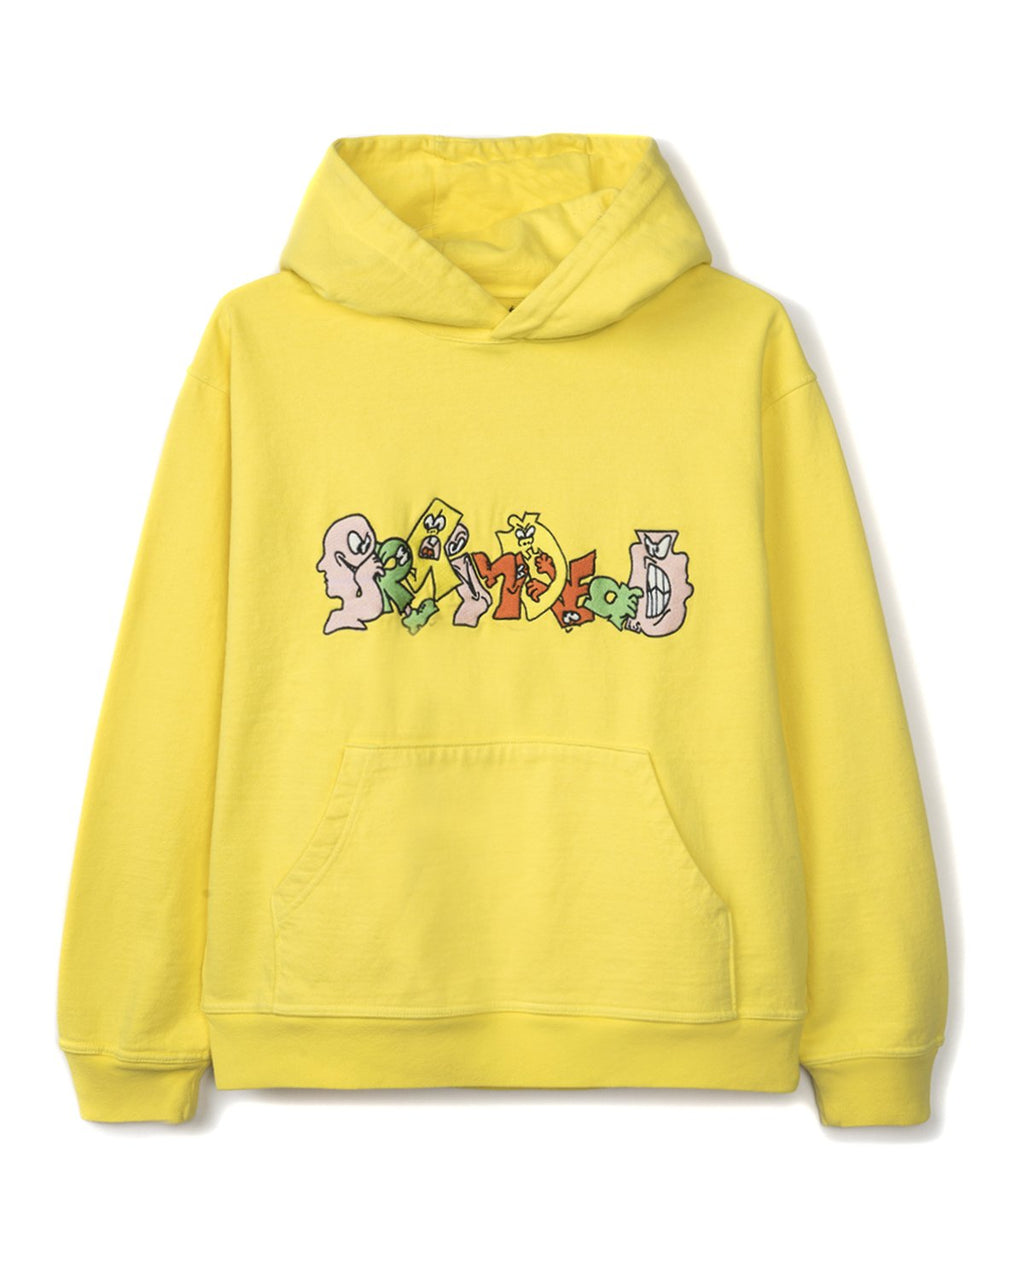 EMBROIDERED GRAFFITI HOODIE - YELLOW